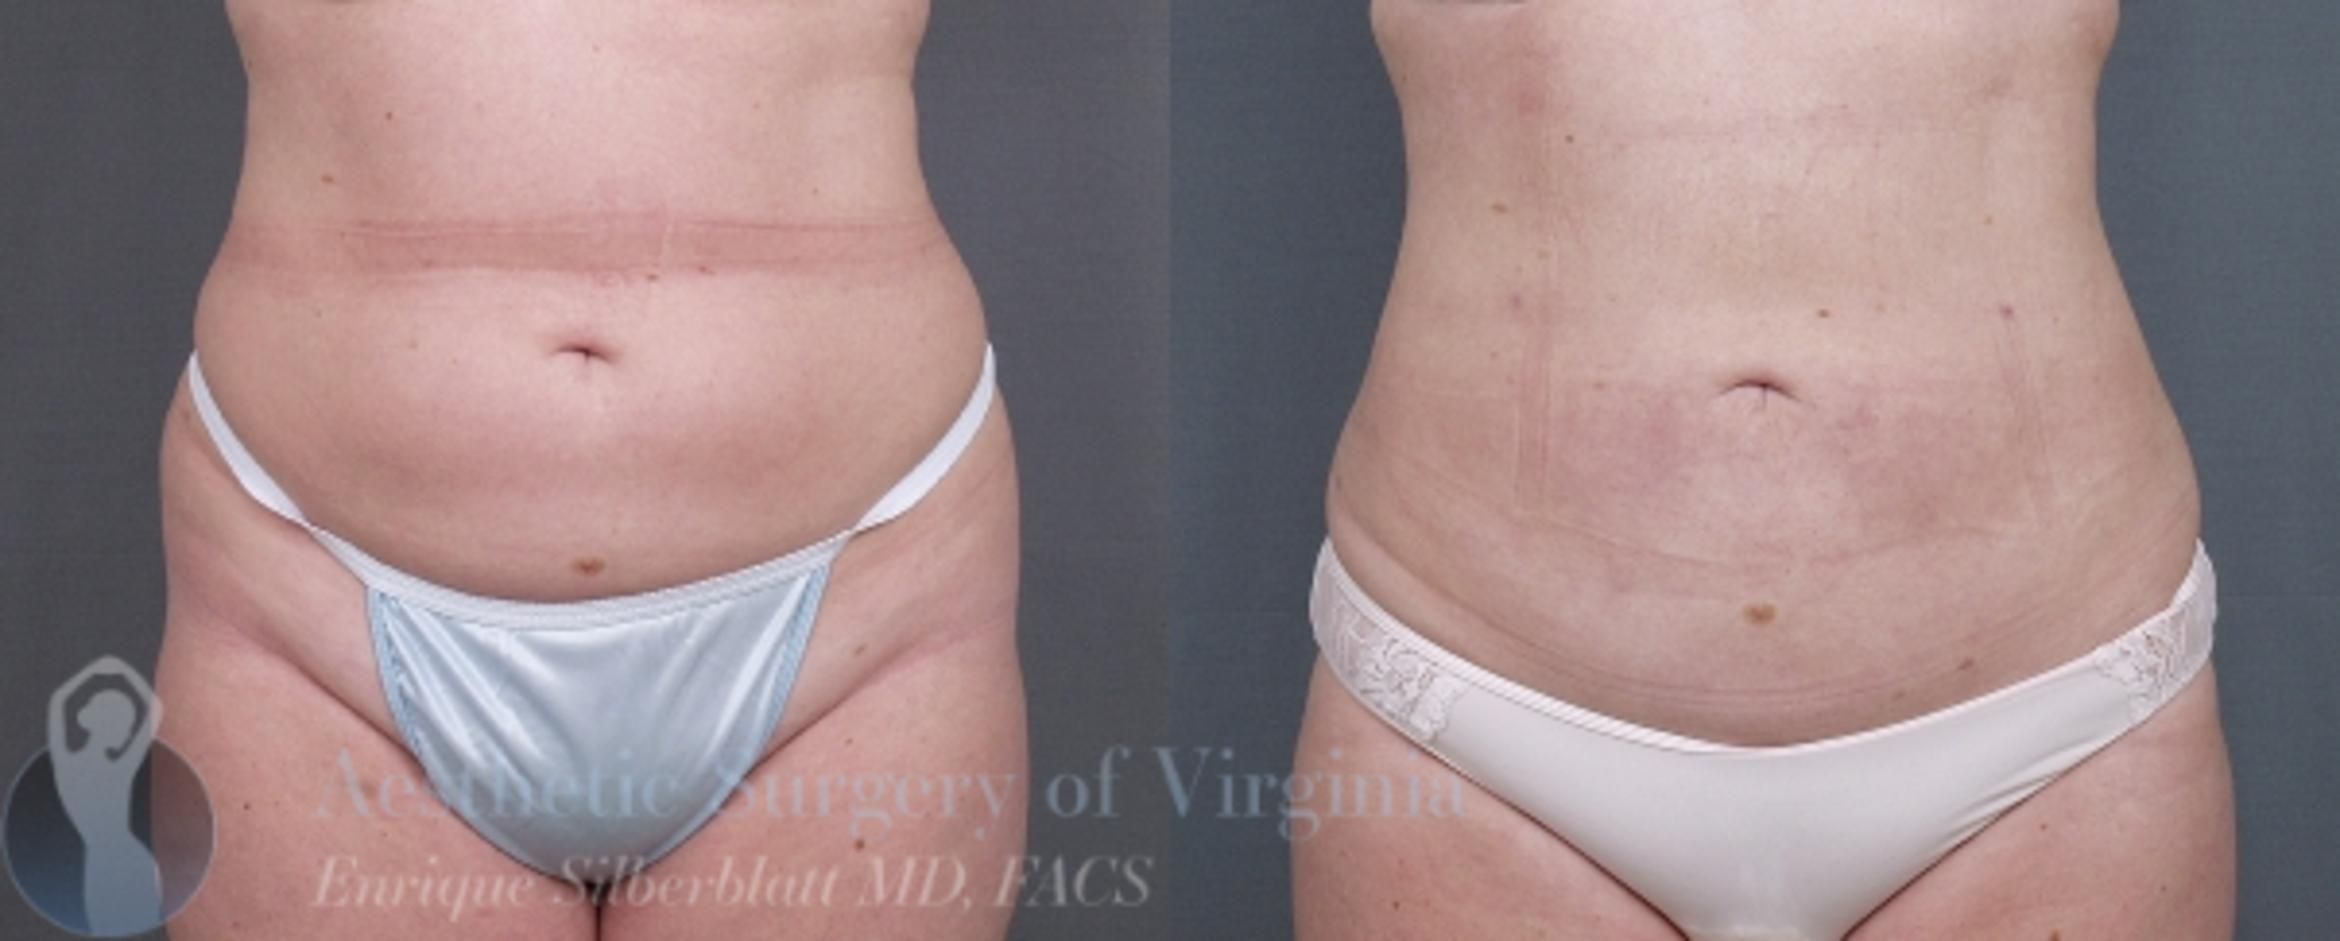 Liposuction Case 33 Before & After View #1 | Roanoke, VA | Aesthetic Surgery of Virginia: Enrique Silberblatt, MD